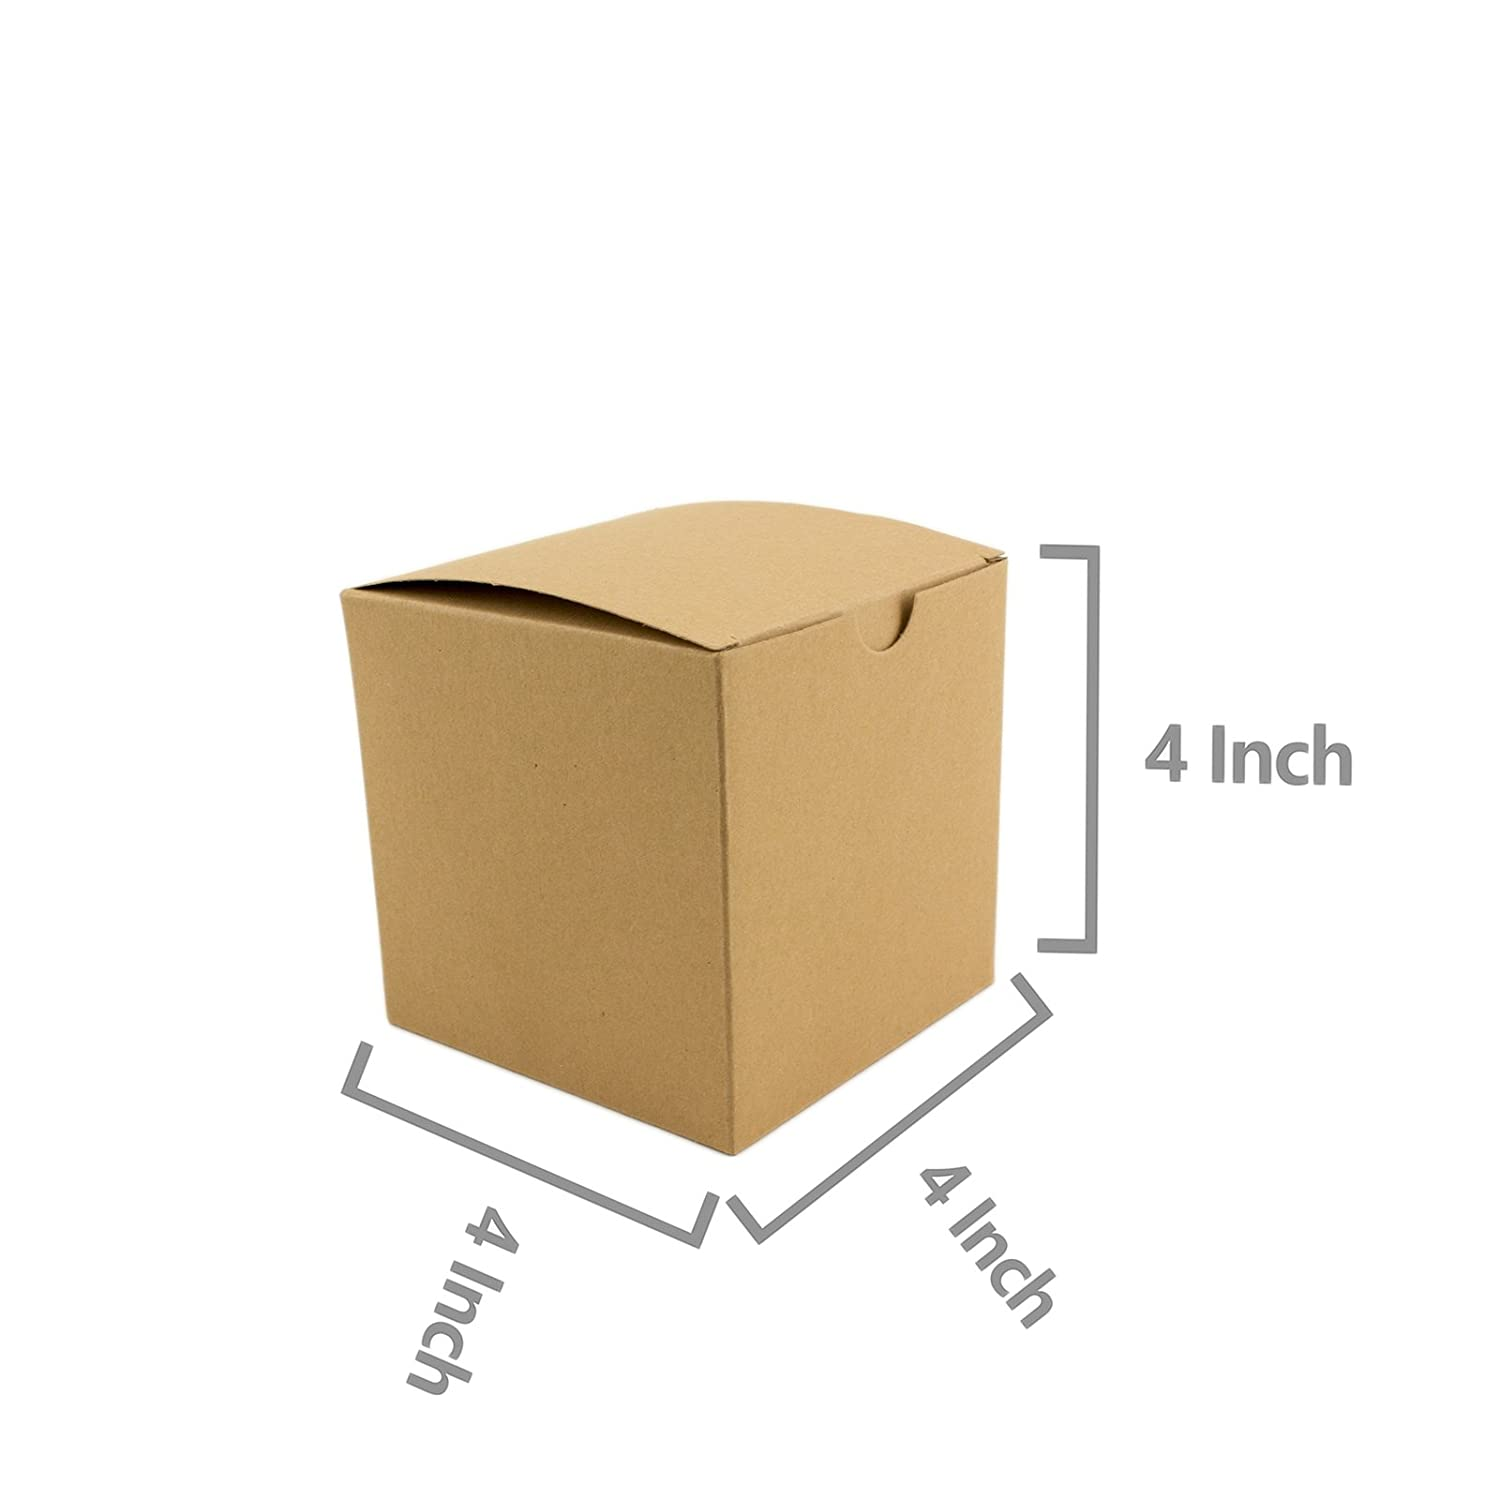 Adorox 50 Pack 4 x 4 x 4 Kraft Boxes Cardboard Gift Box with Lids for Wedding Birthday Holiday Baby Shower Favor Brown, 4 X 4 X 4